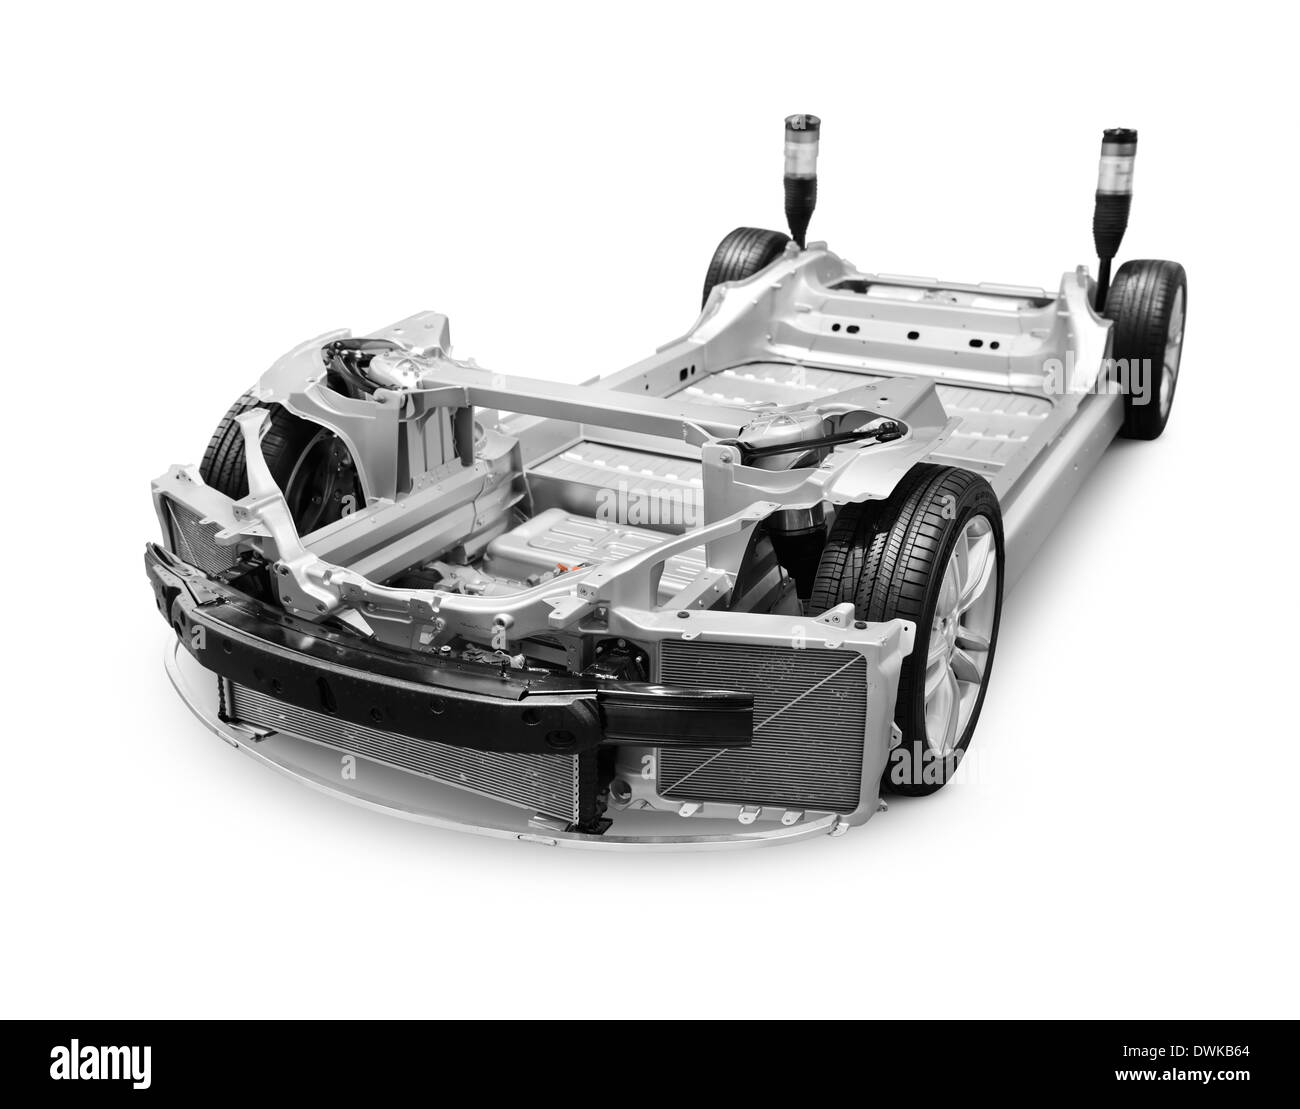 Design of car frame - Chassis Base Frame Of 2014 Tesla Model S Luxury Electric Car Isolated On White Background